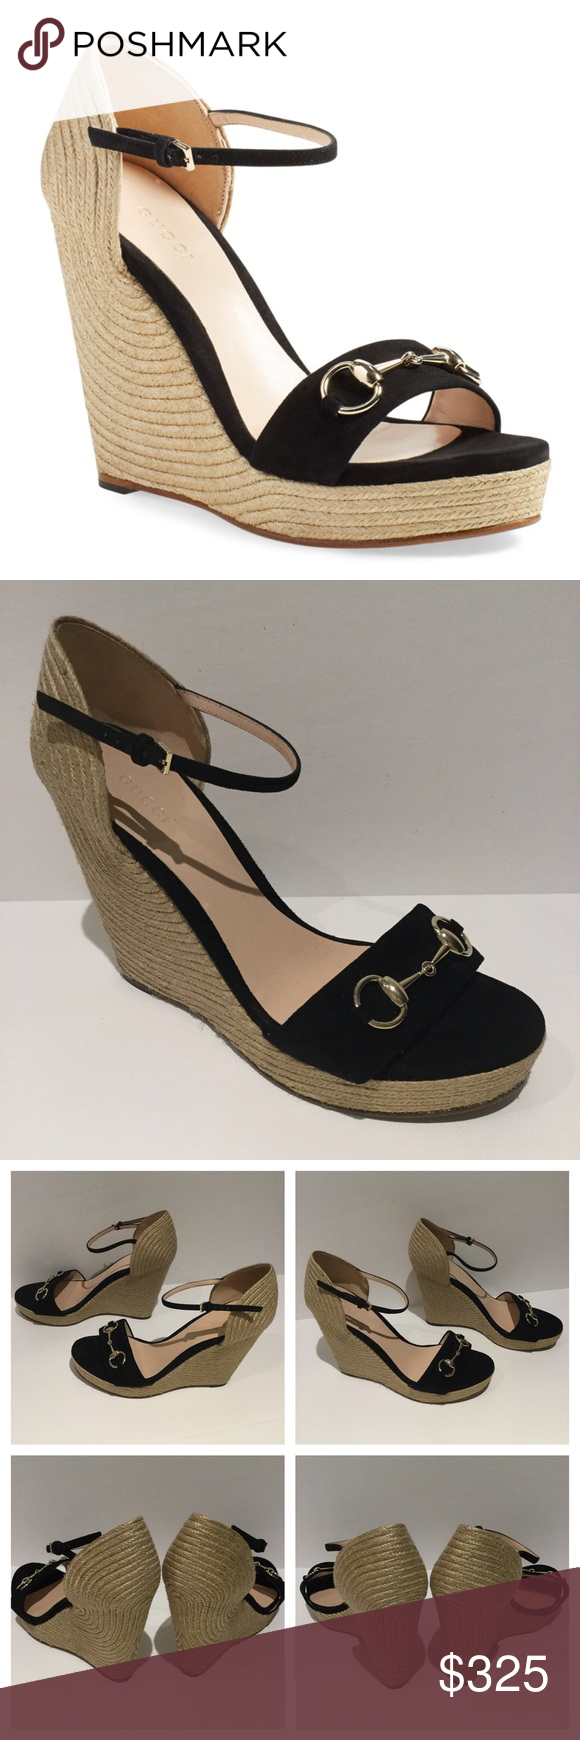 71cec5f229 GUCCI CAROLINA SUEDE WEDGE SANDAL. NEW WITHOUT TAGS Carolina Suede ...